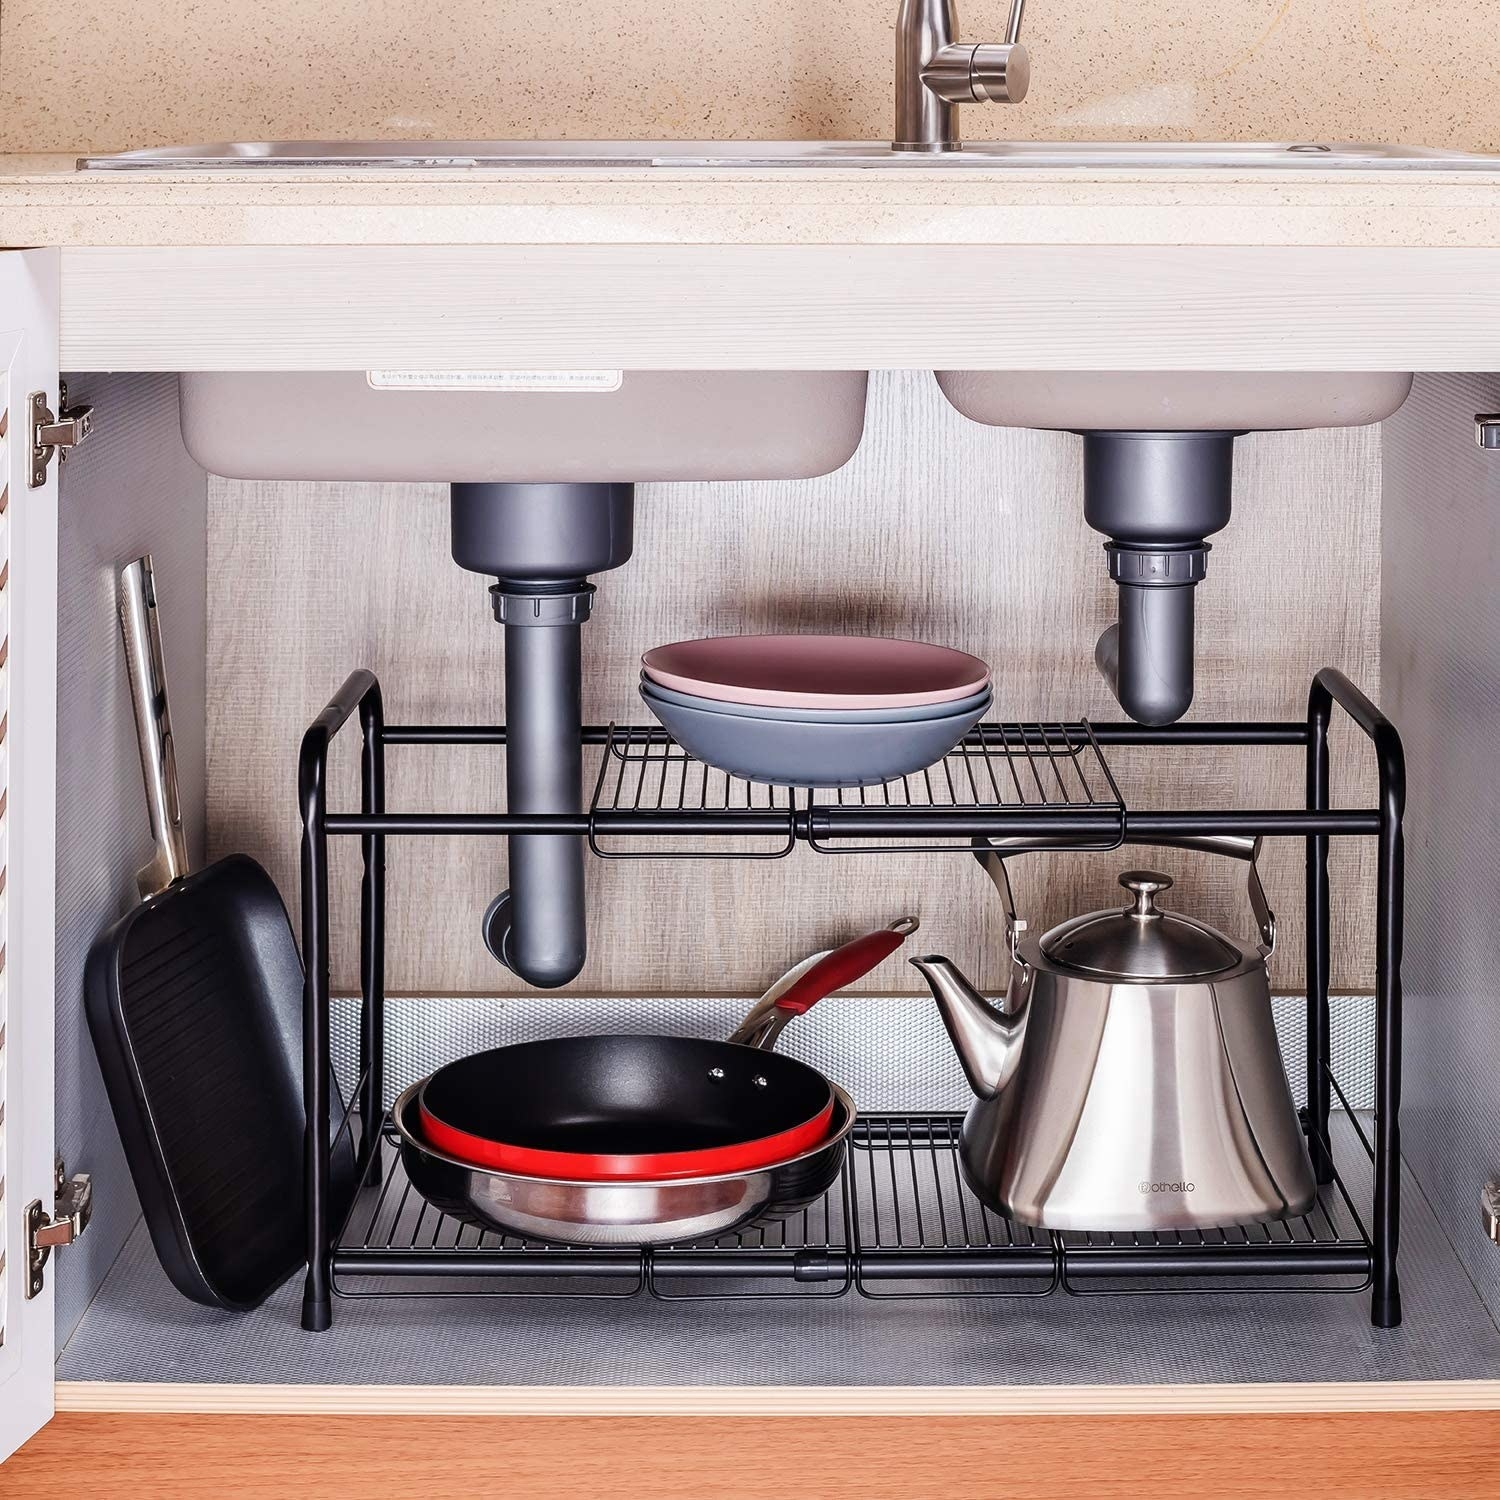 A metal rack organizing dishes in a cupboard underneath the sink